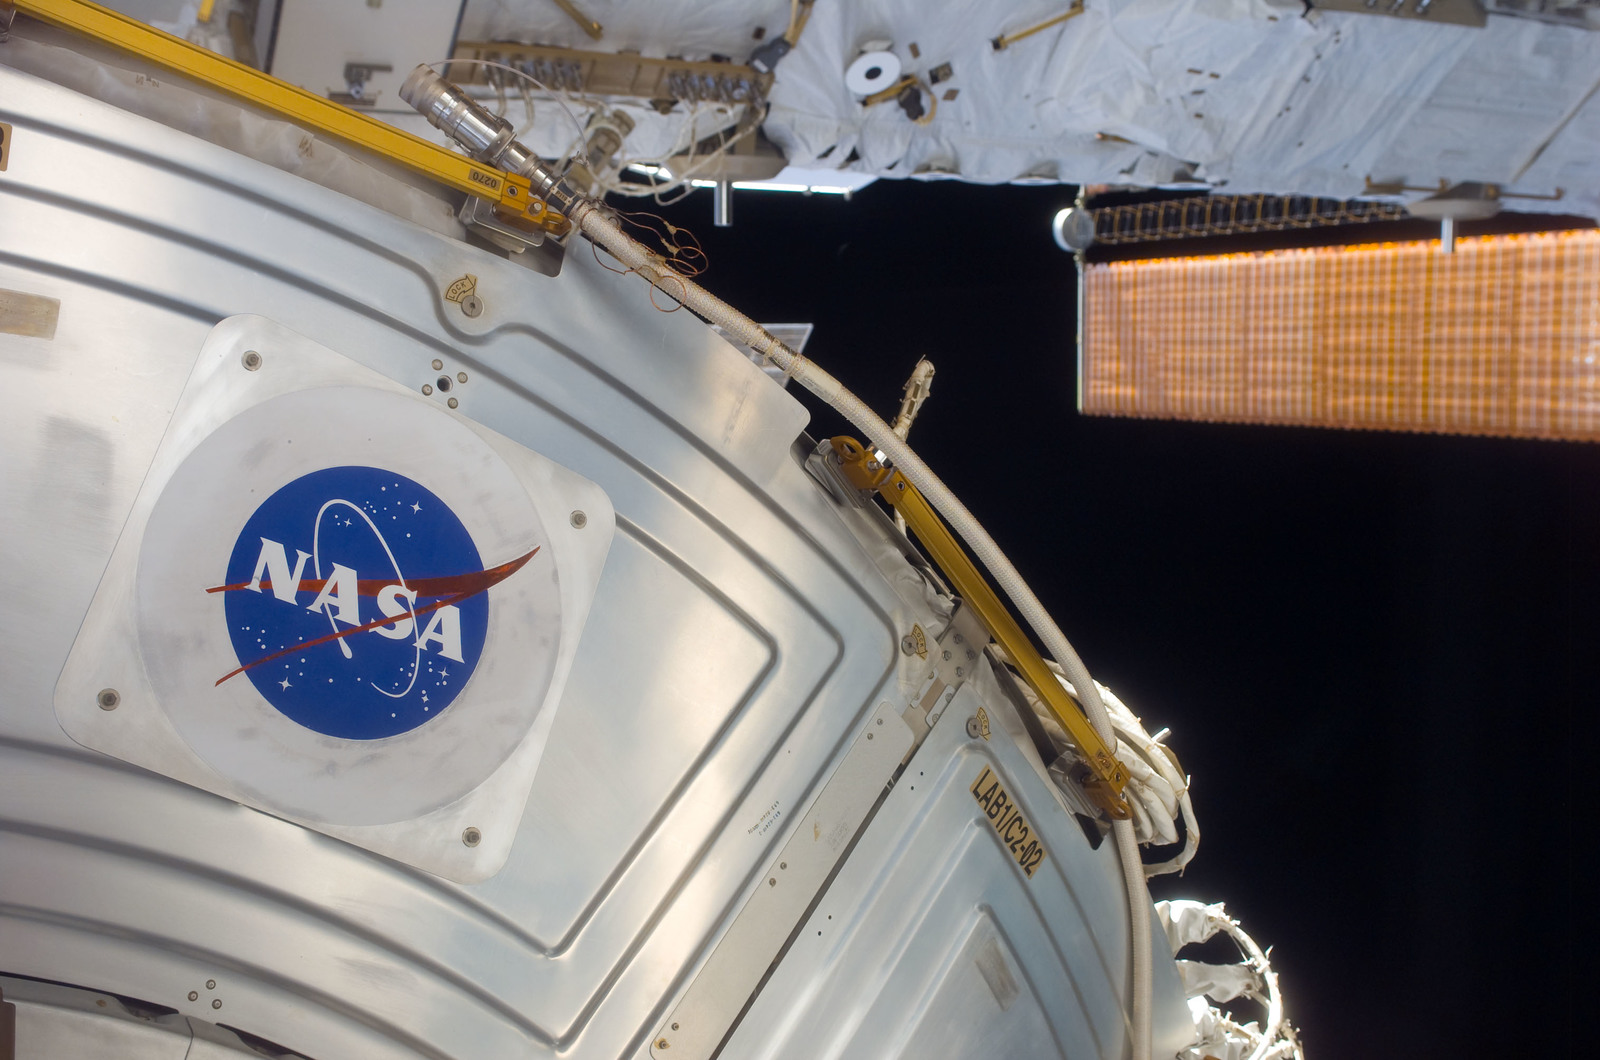 S116E05957 - STS-116 - FWD view of the U.S. Laboratory during STS-116 EVA 1